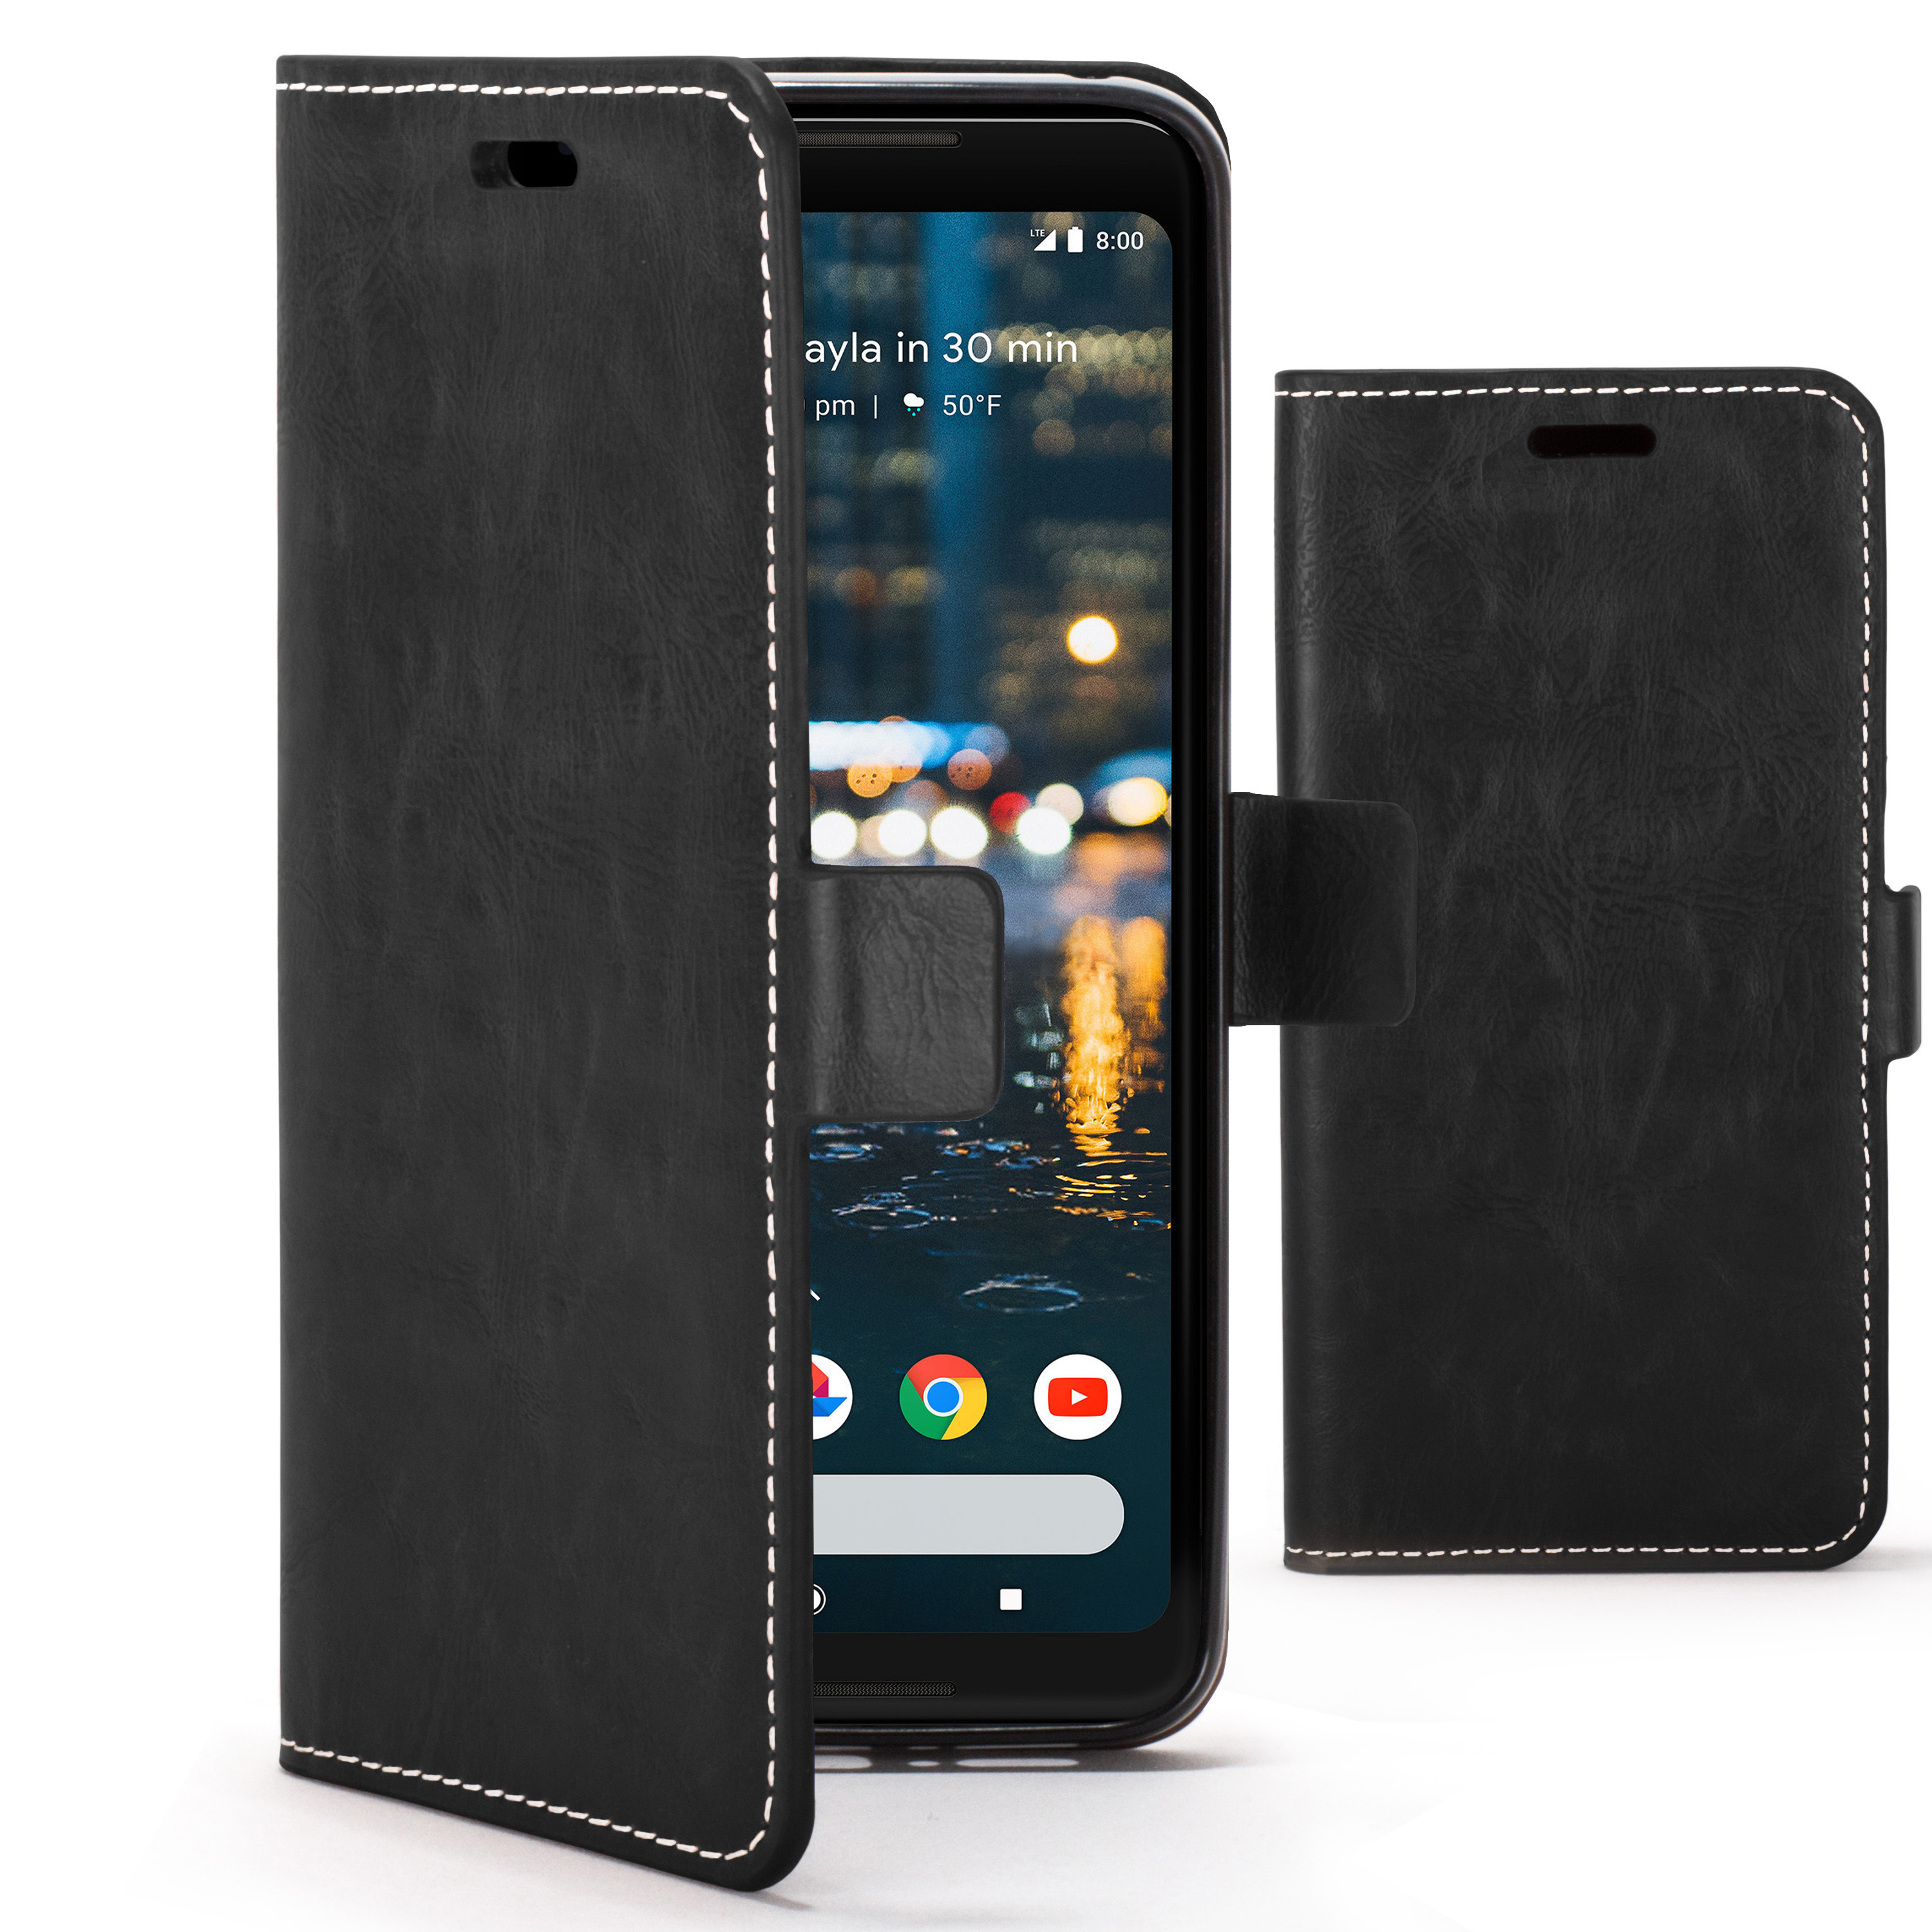 best website 65a48 e5fac Forefront Cases Google Pixel 2 XL Premium Handmade PU Leather Case Cover |  Black